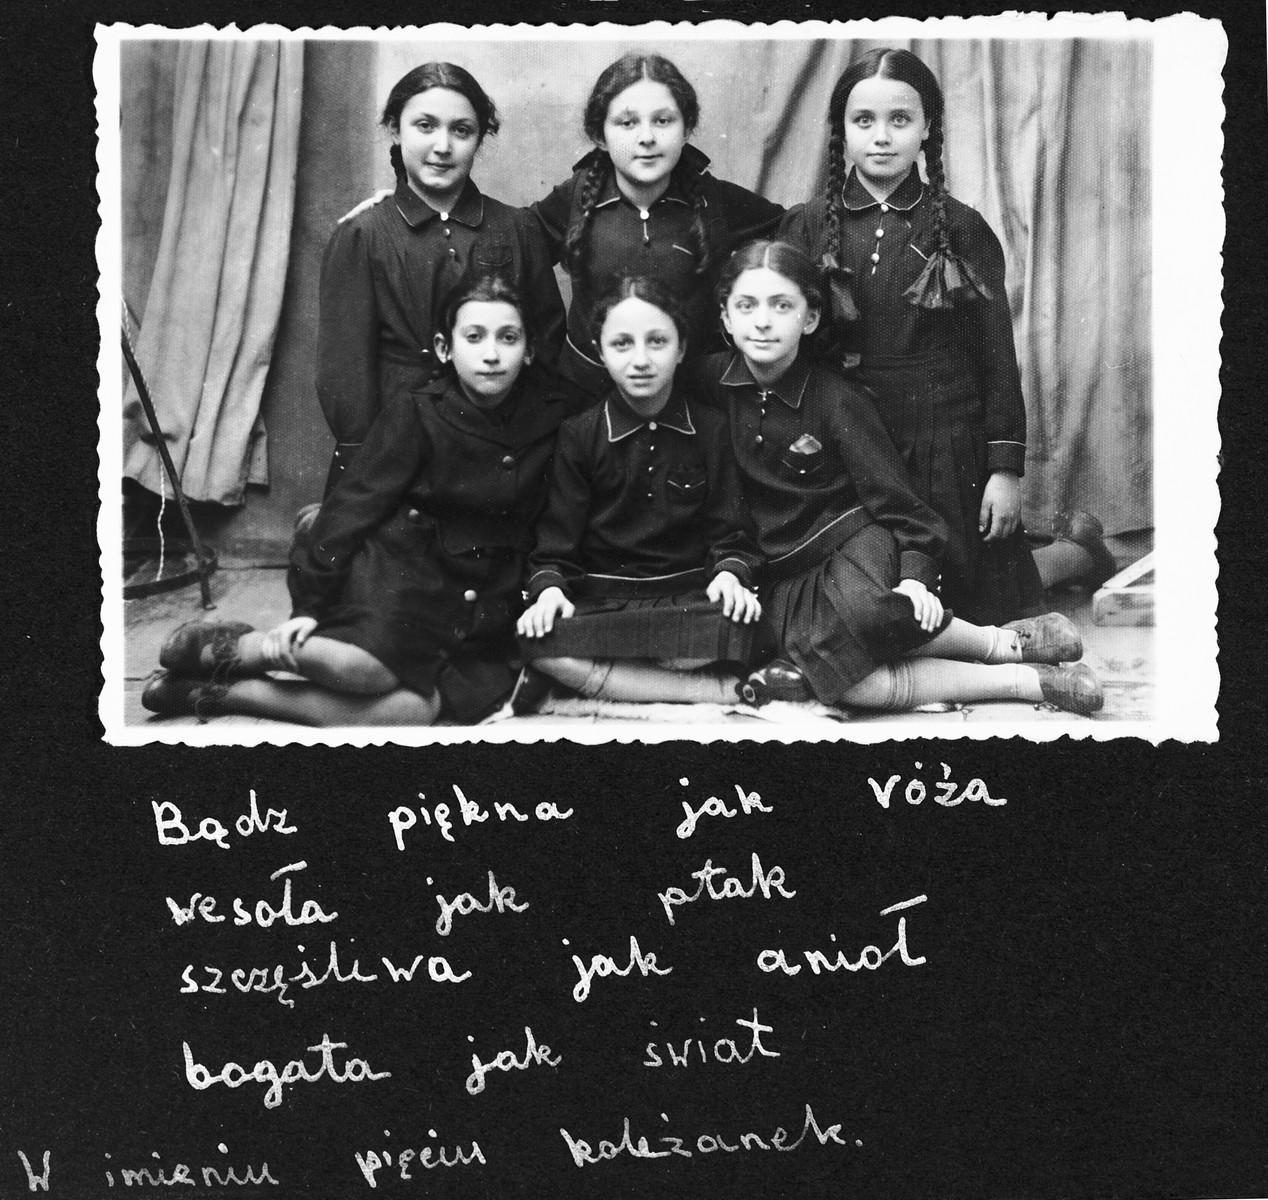 Group portrait of five classmates from the Tarbut school in Luck in their school uniforms.  This photo was part of a going-away album presented to Sara Sztejnsznajd prior to her immigration to the United States.